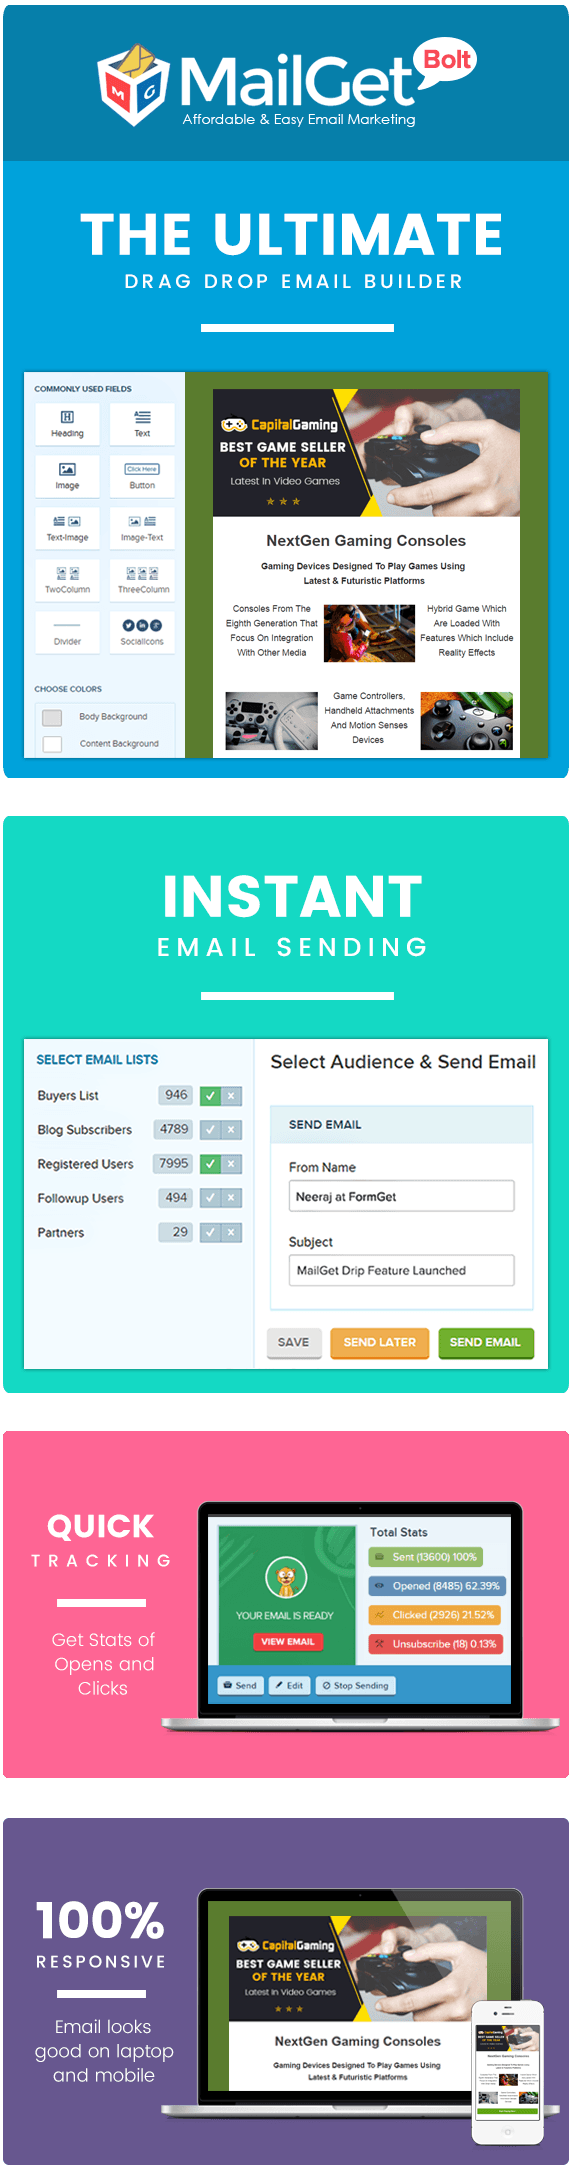 MAILGET BOLT – EMAIL MARKETING FOR GAMES